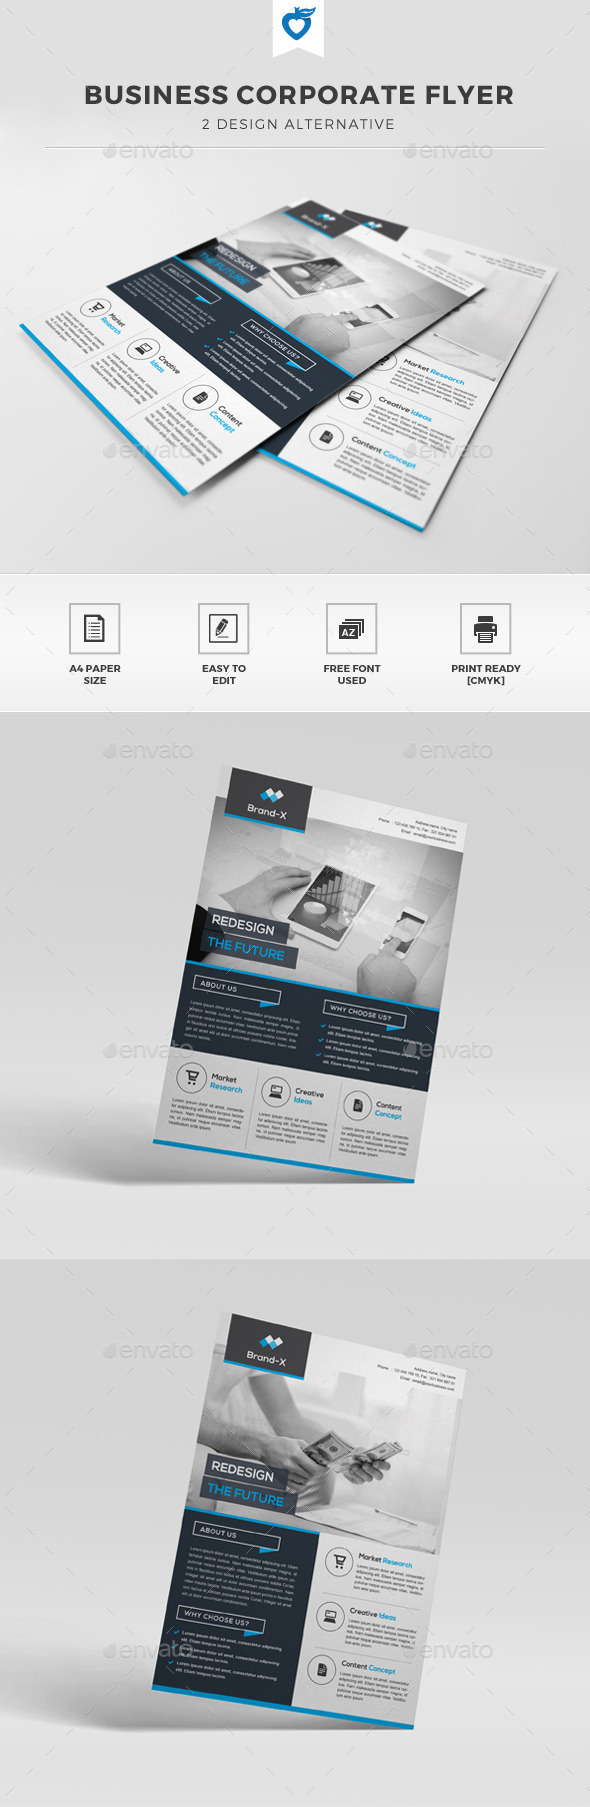 GraphicRiver Business Corporate Flyer 11297428